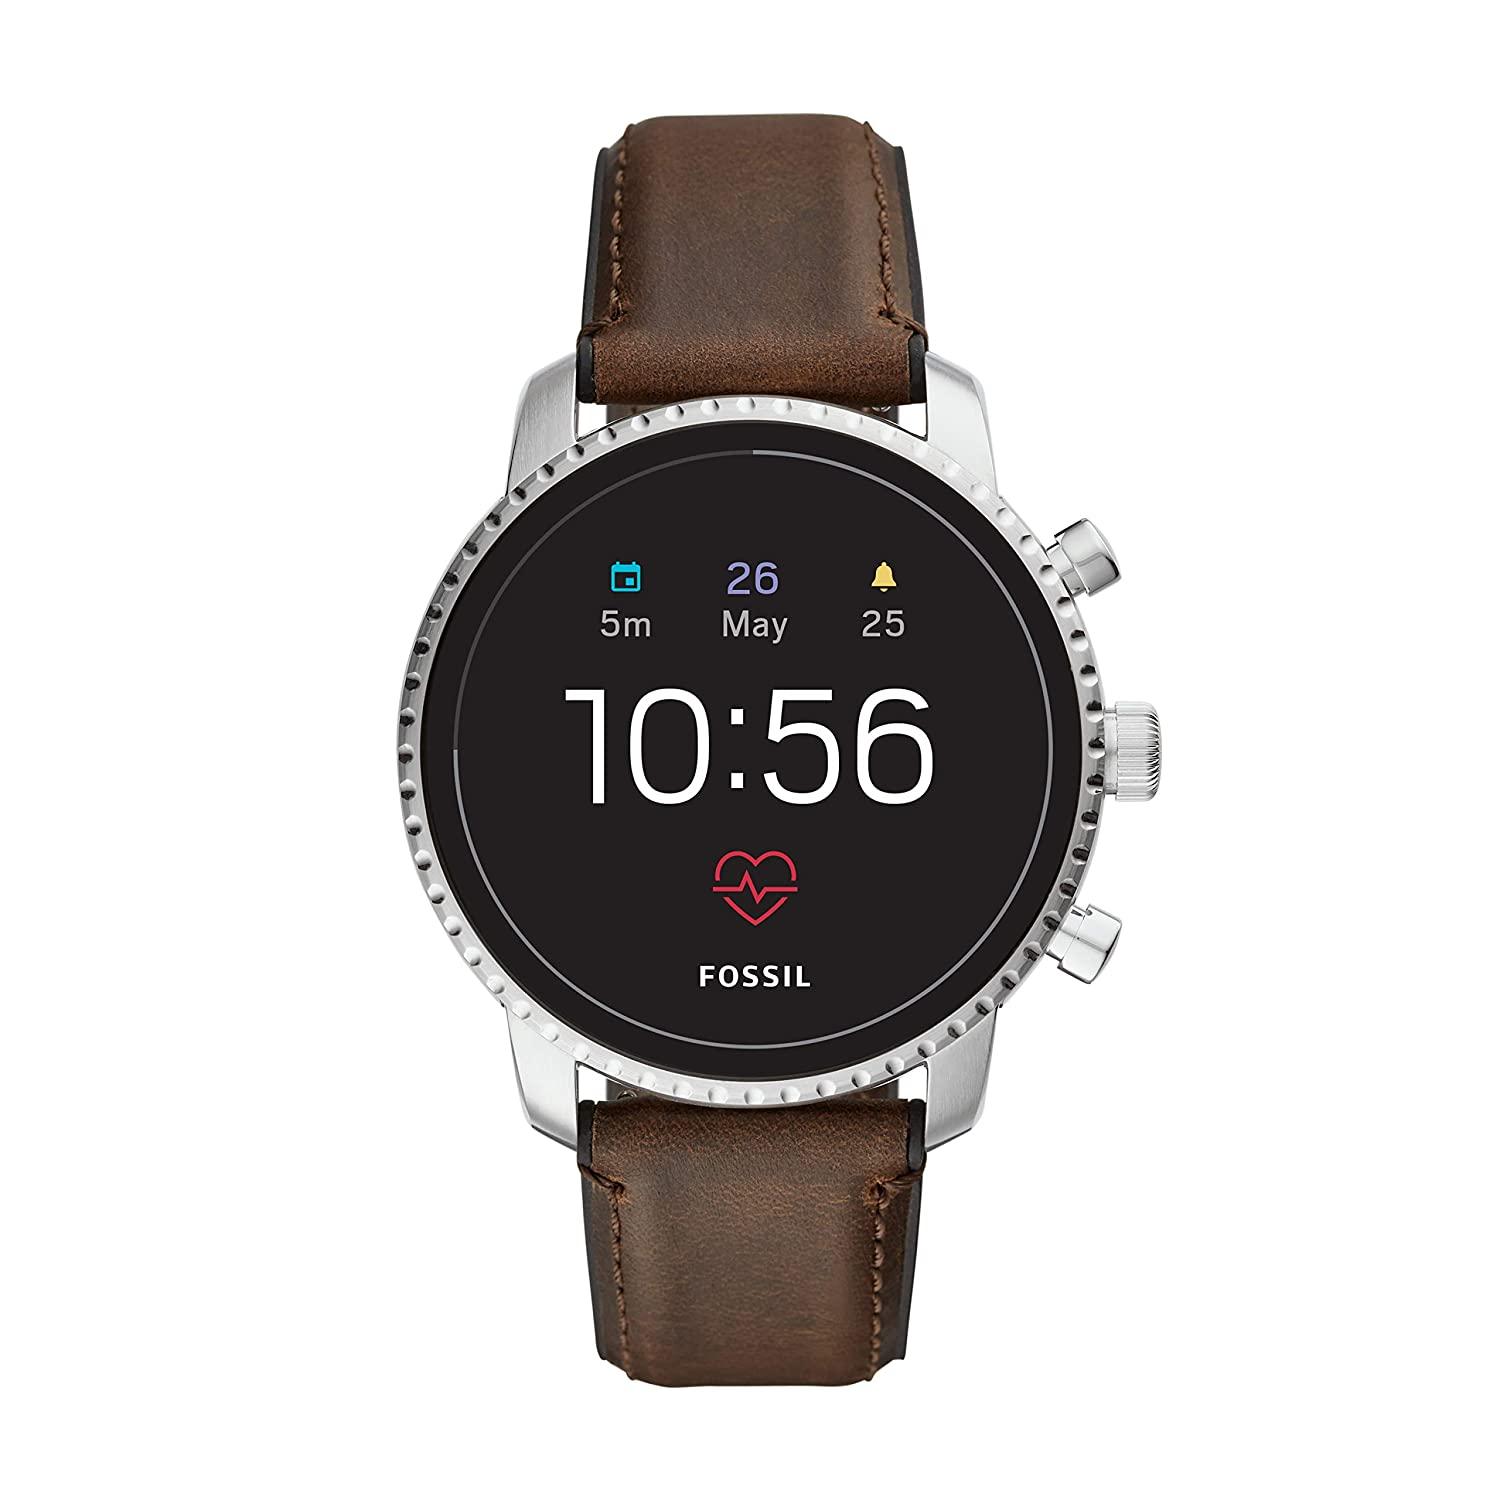 Fossil Mens Gen 4 Explorist HR Stainless Steel and Leather Touchscreen Smartwatch, Color: Silver, Brown (Model: FTW4015)